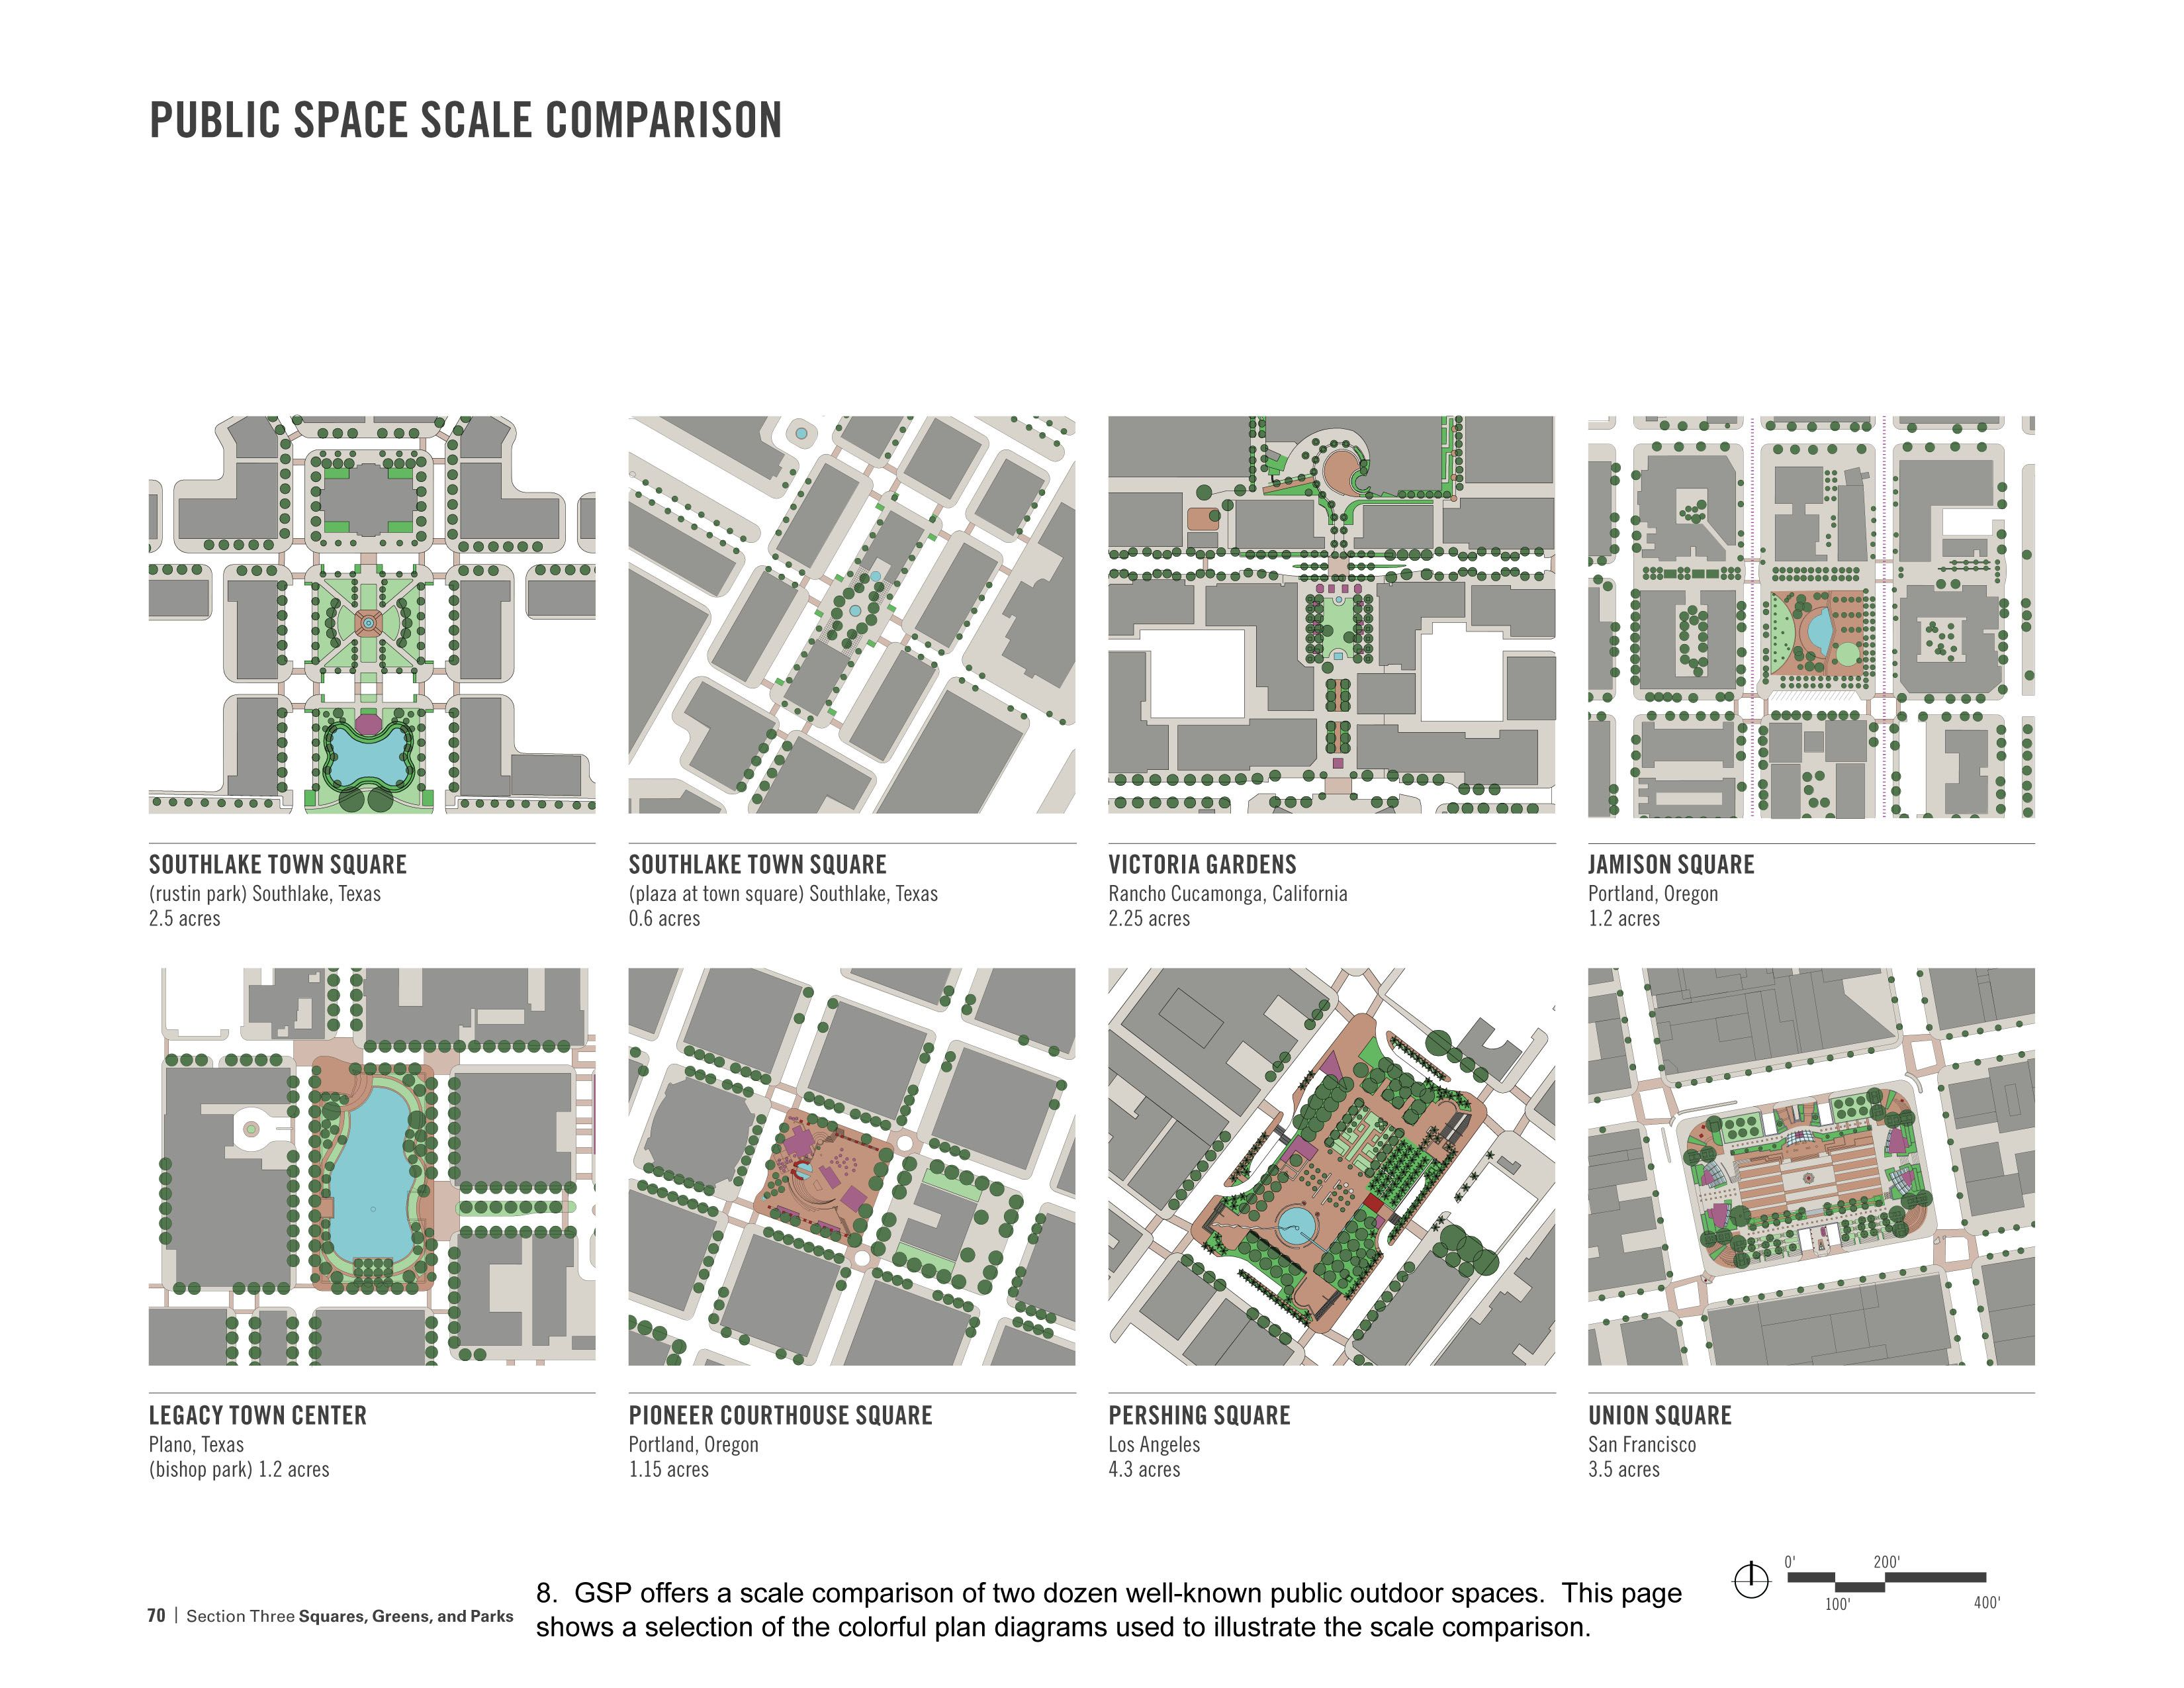 29 best images about Architectural and Urban Design Diagrams on ...